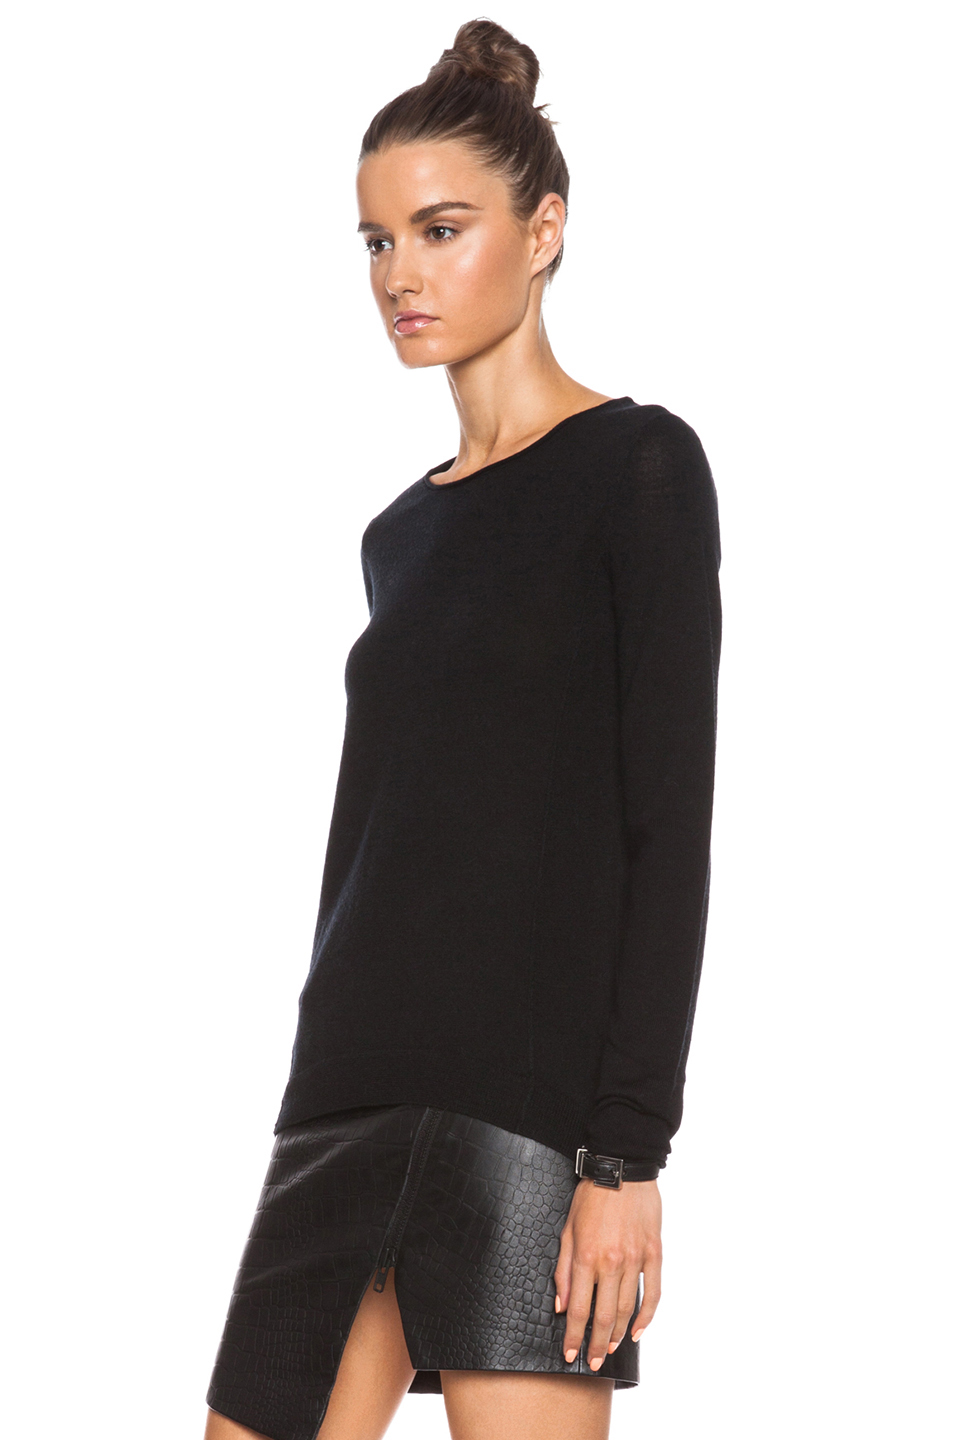 Merino crew sweater in black